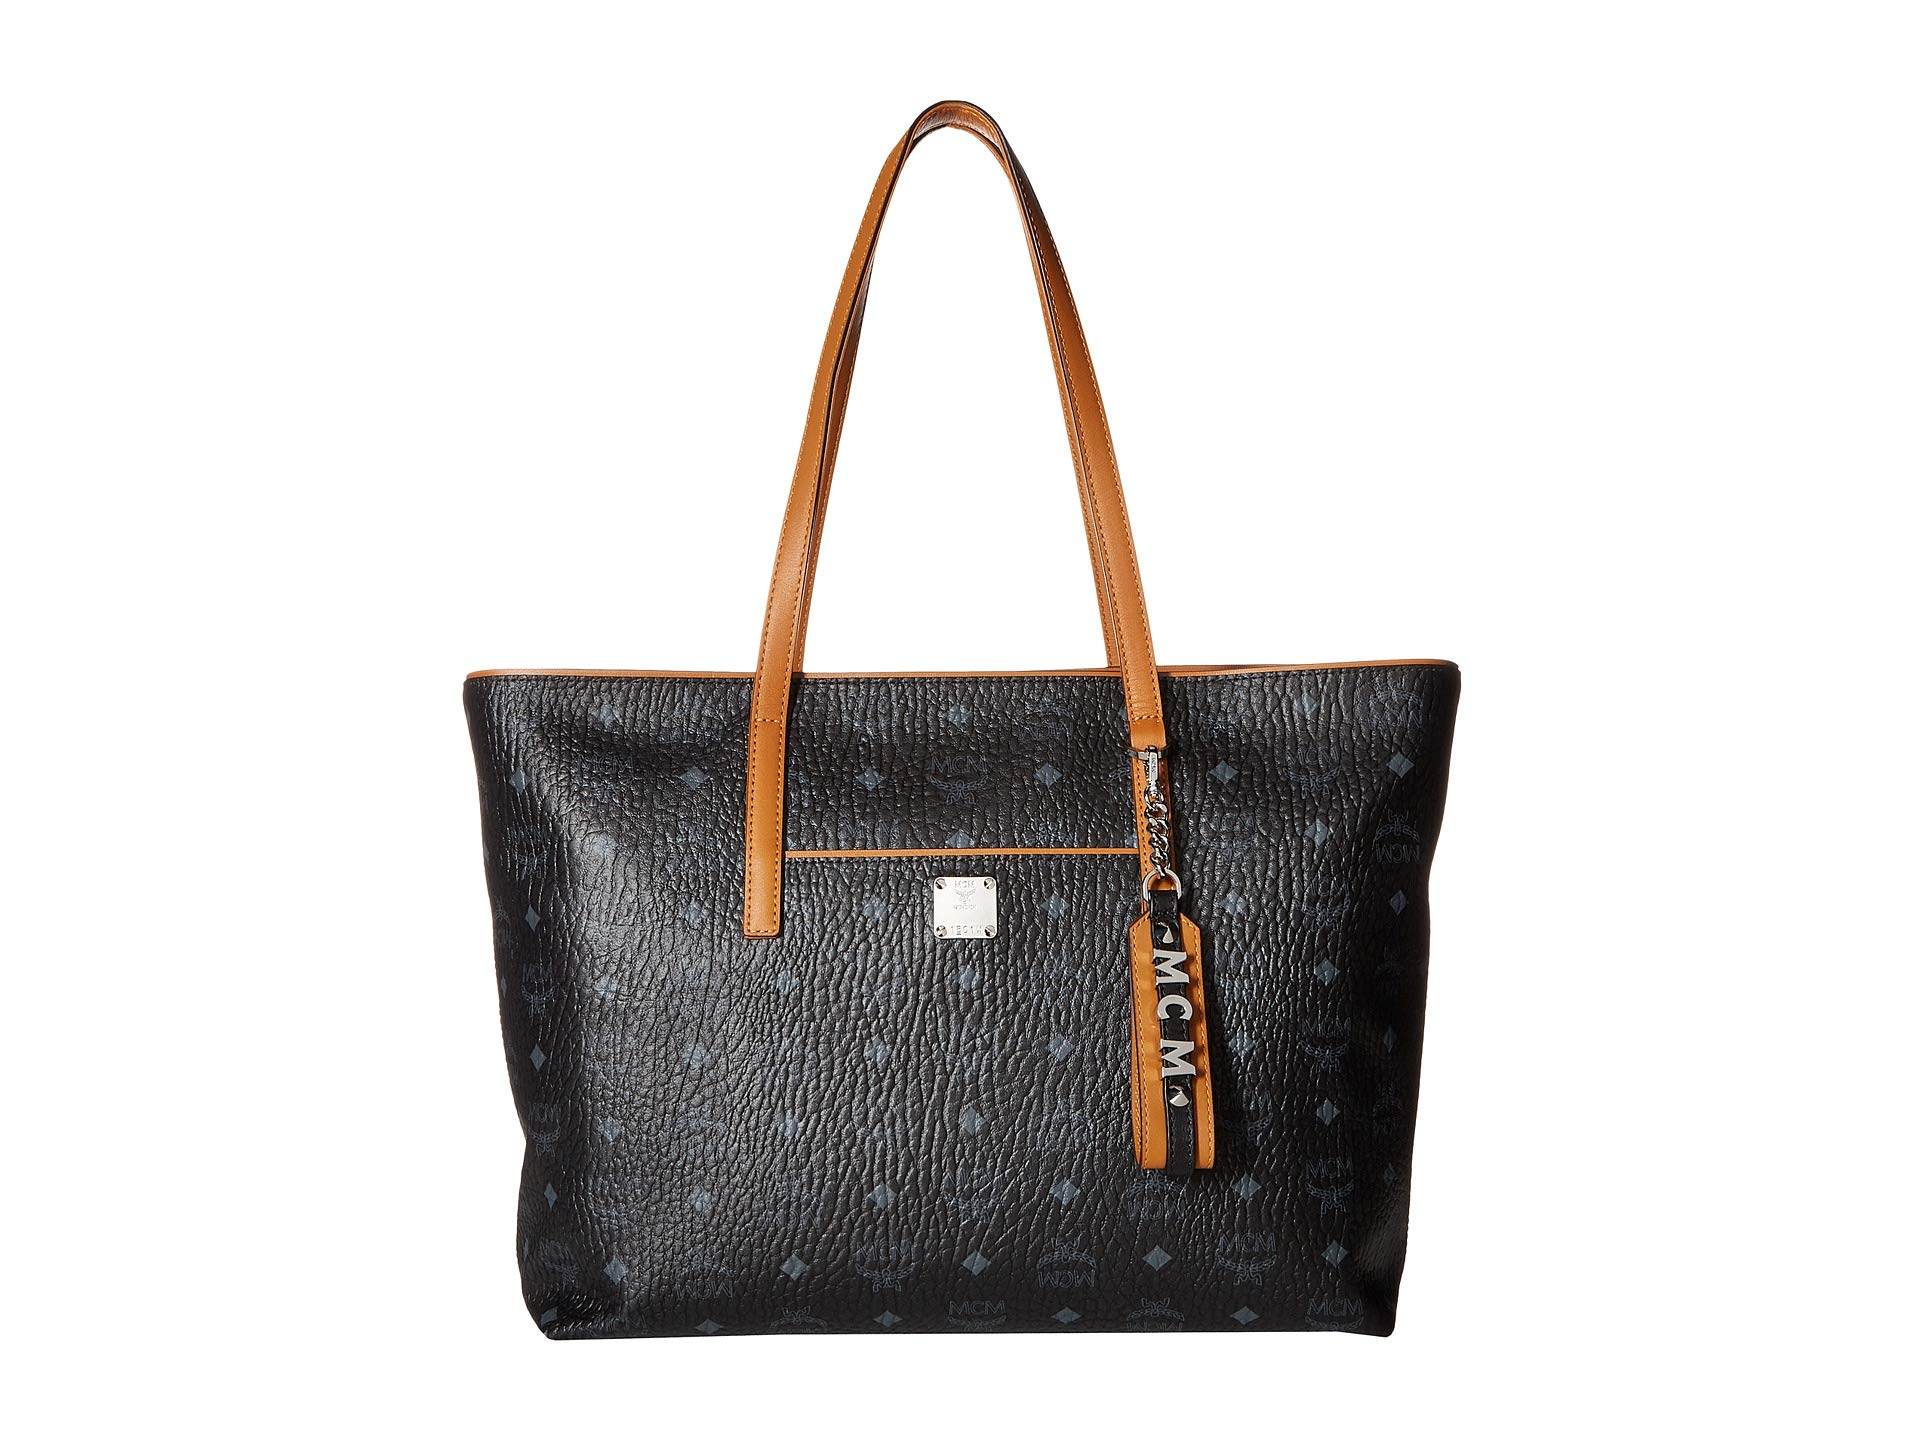 Medium Medium Mcm Shopper Anya Mcm Anya Black Black Shopper qP4ZwPx6d